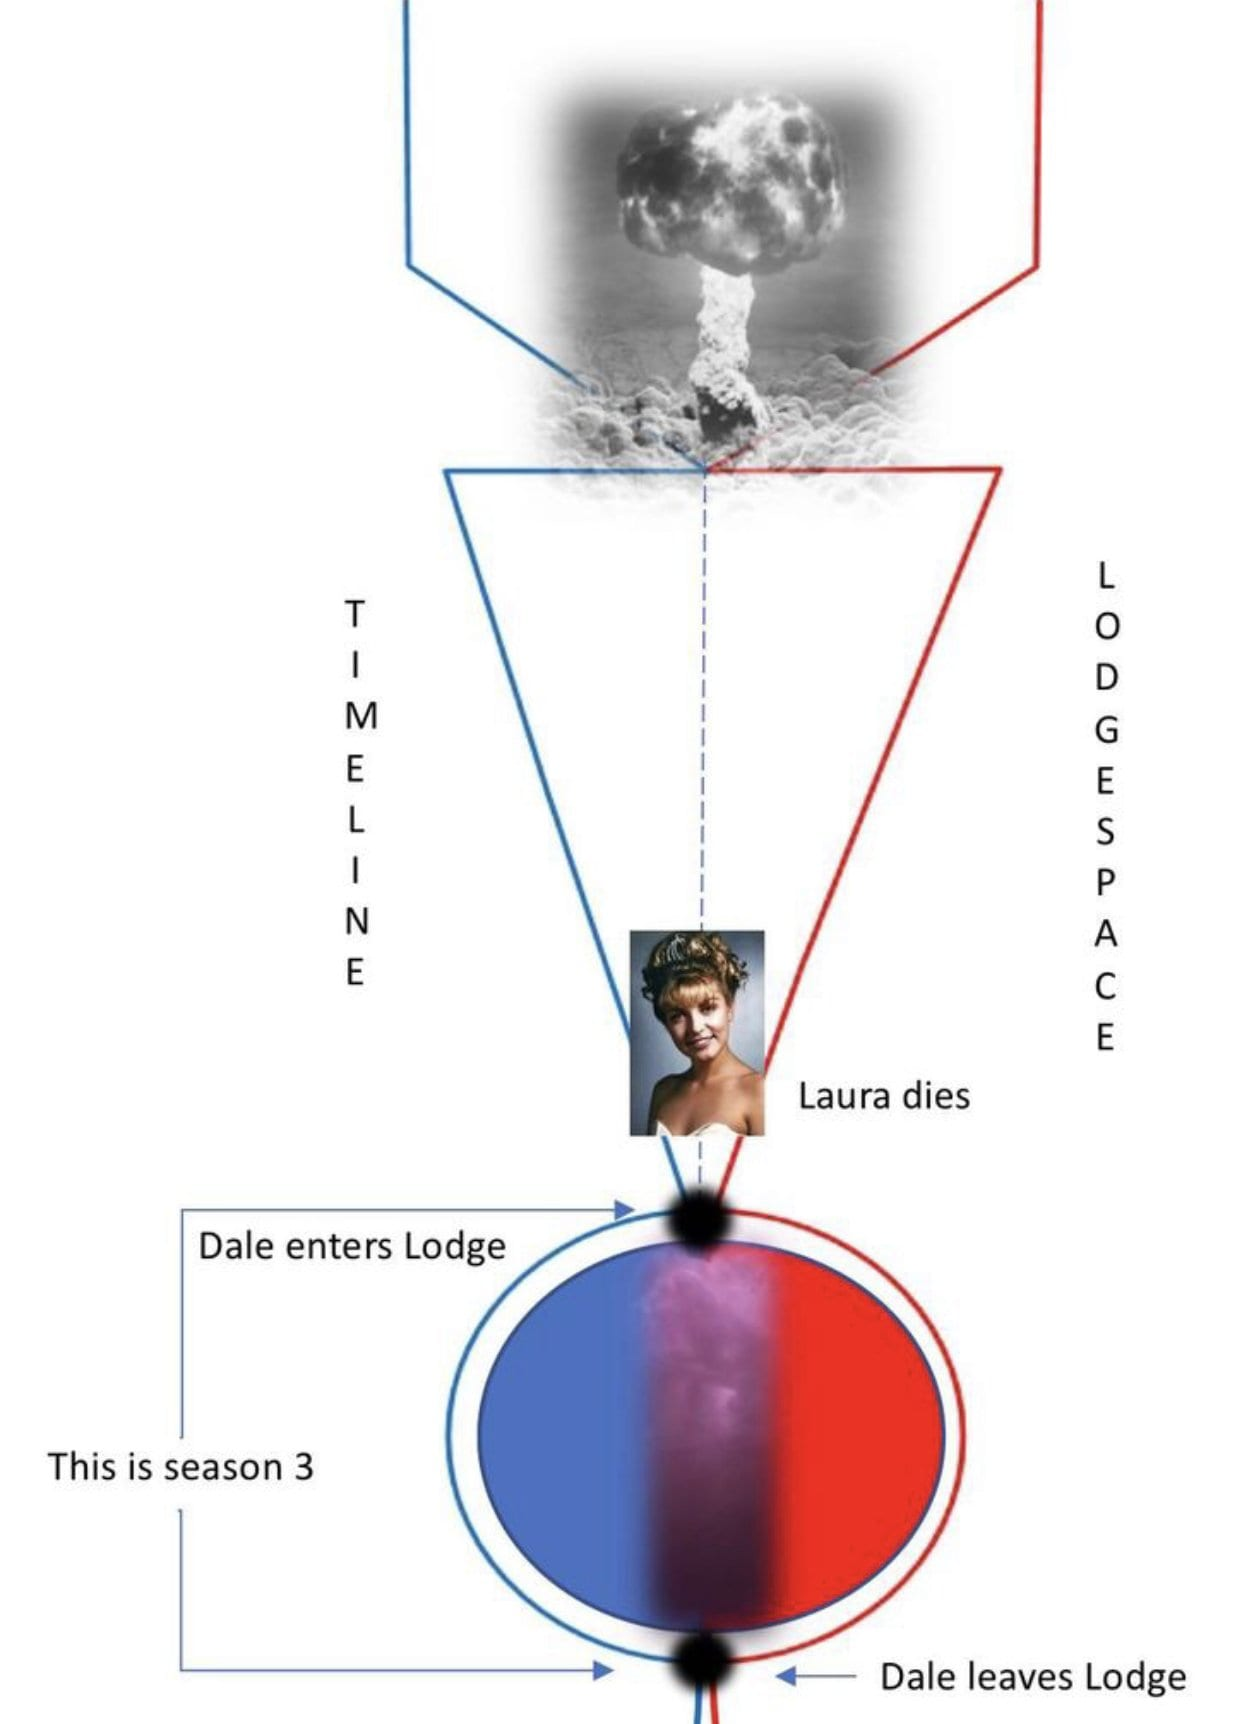 A diagram interpreting how reality works and is shown in Season 3 of Twin Peaks.